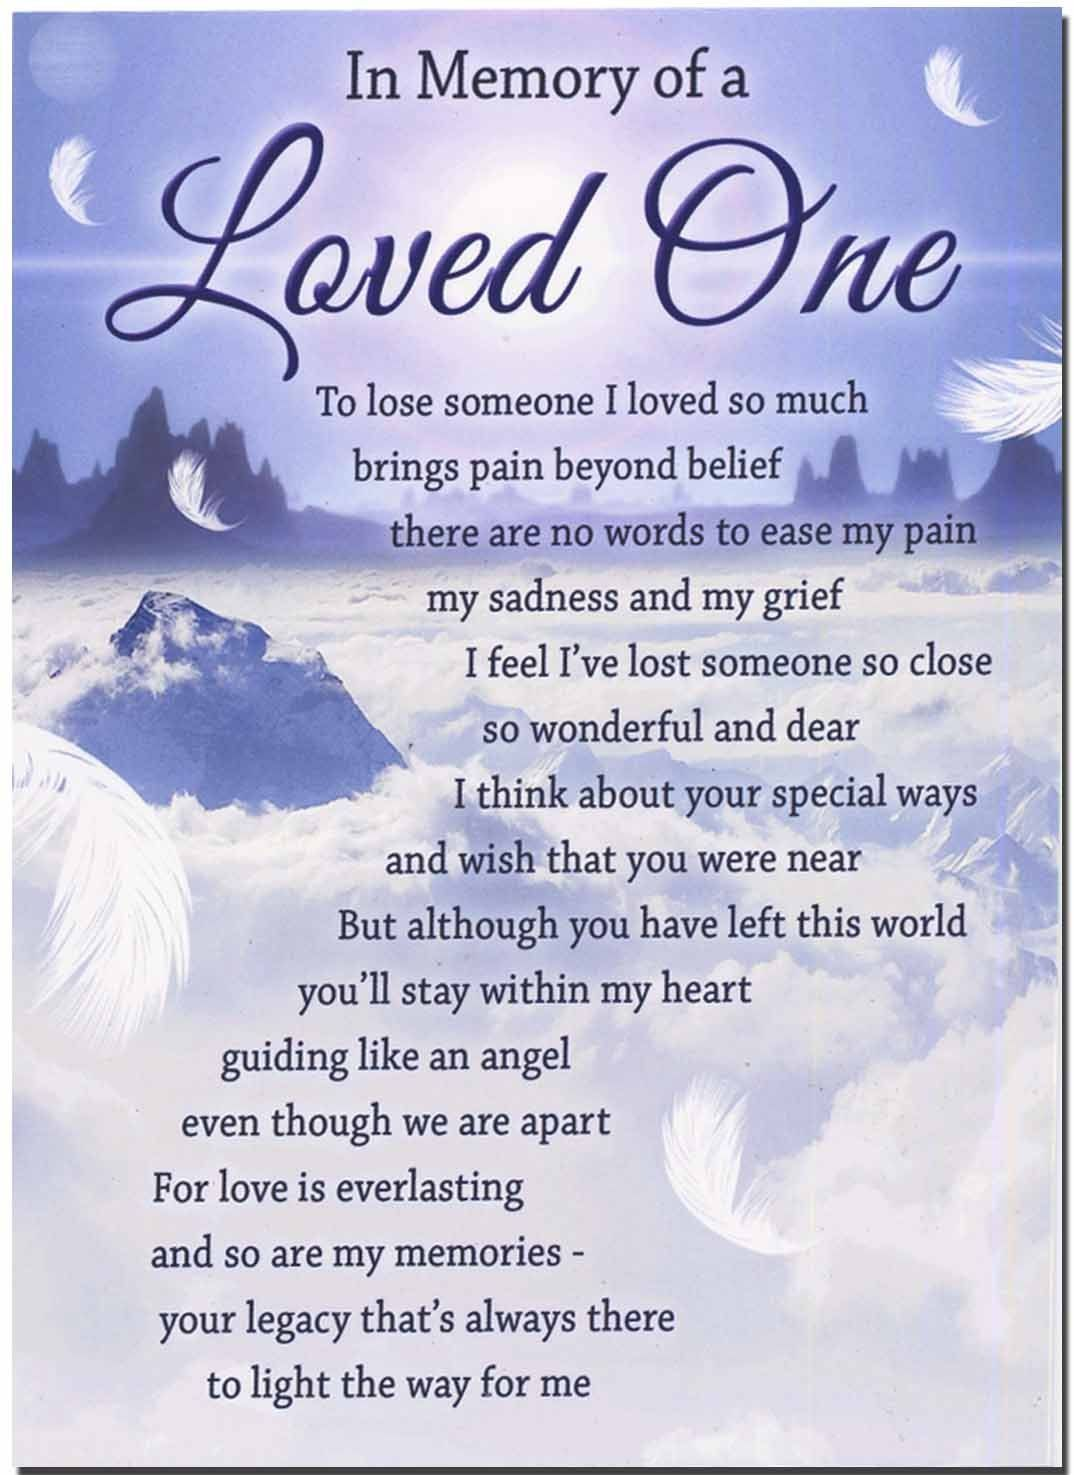 In Memory Of A Loved One My Sister Pam Loved One In Heaven